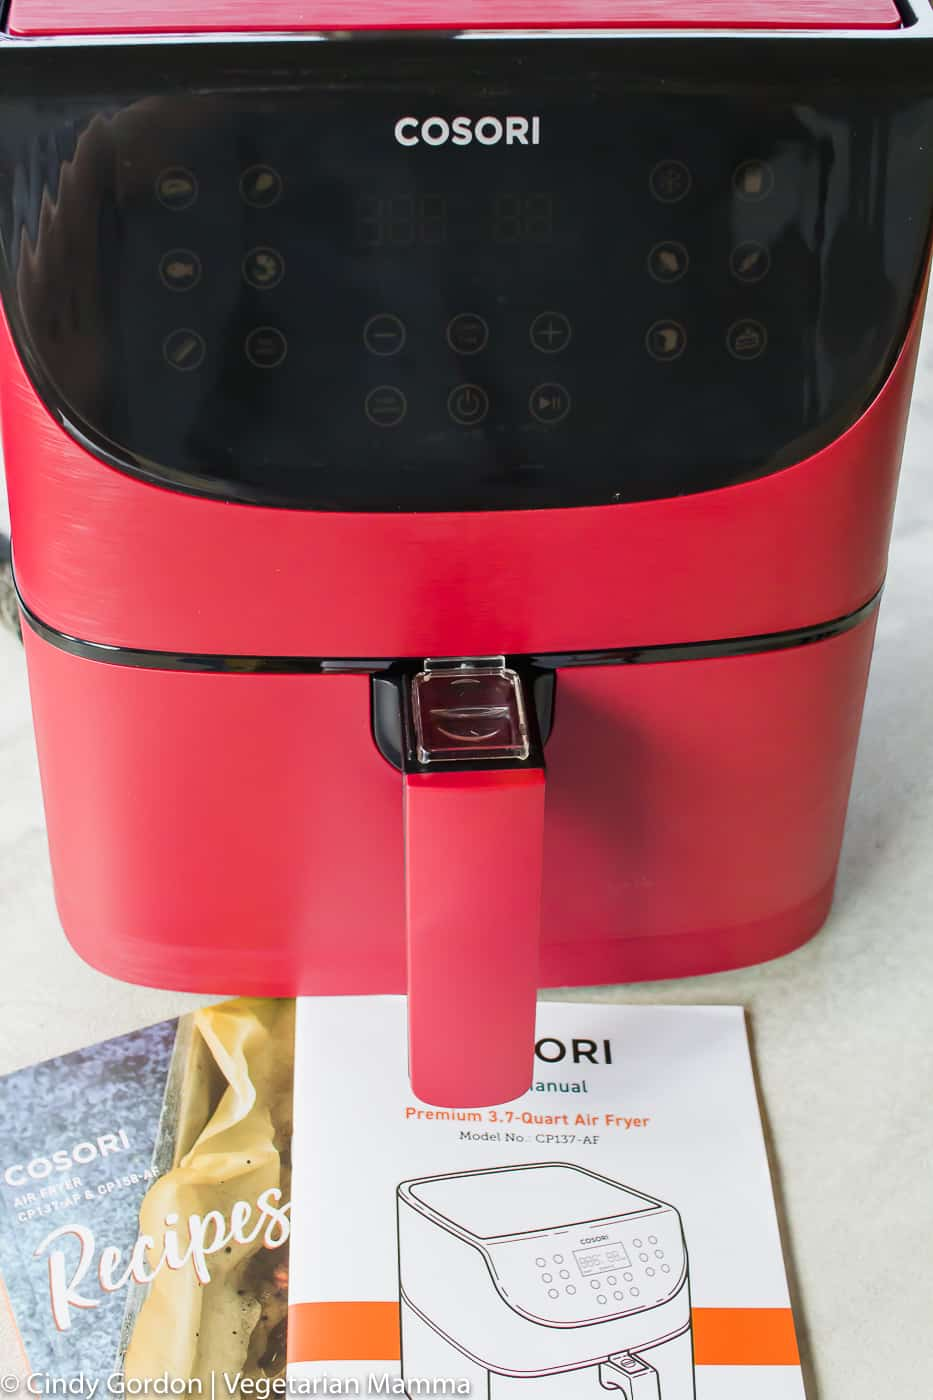 red cosori air fryer with instruction booklet